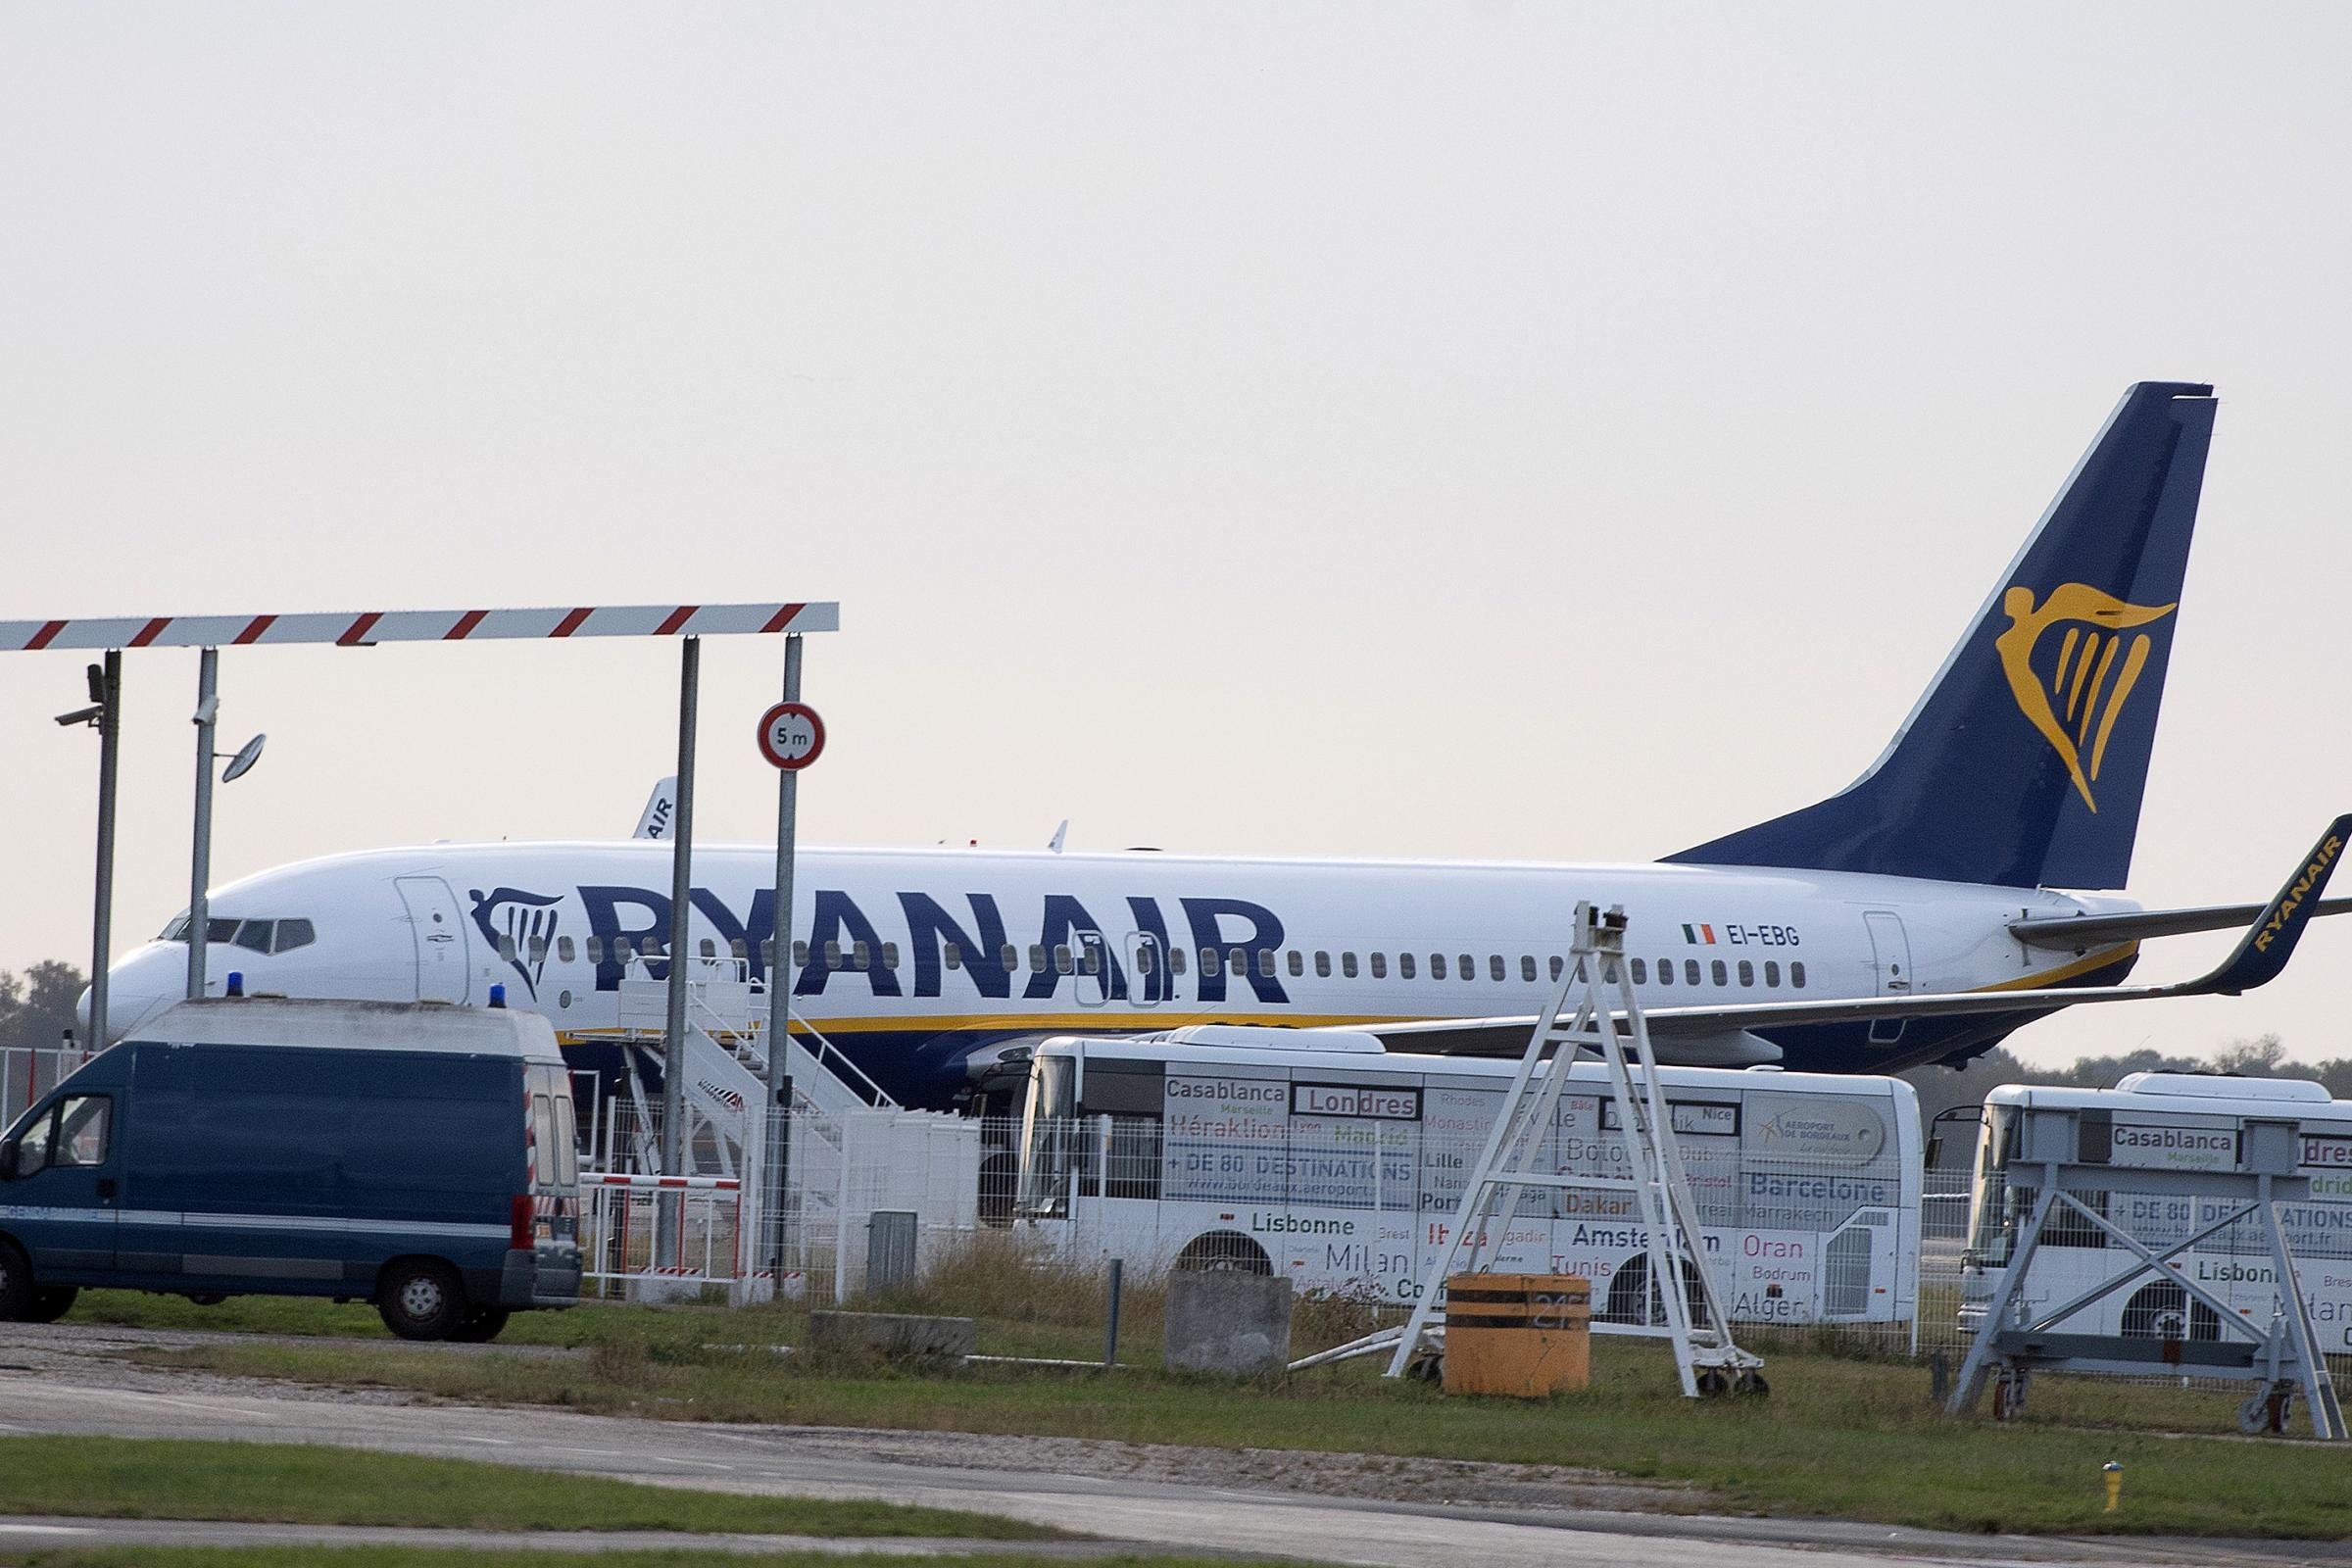 The Ryanair plane on the tarmac at Bordeaux-Merignac airport